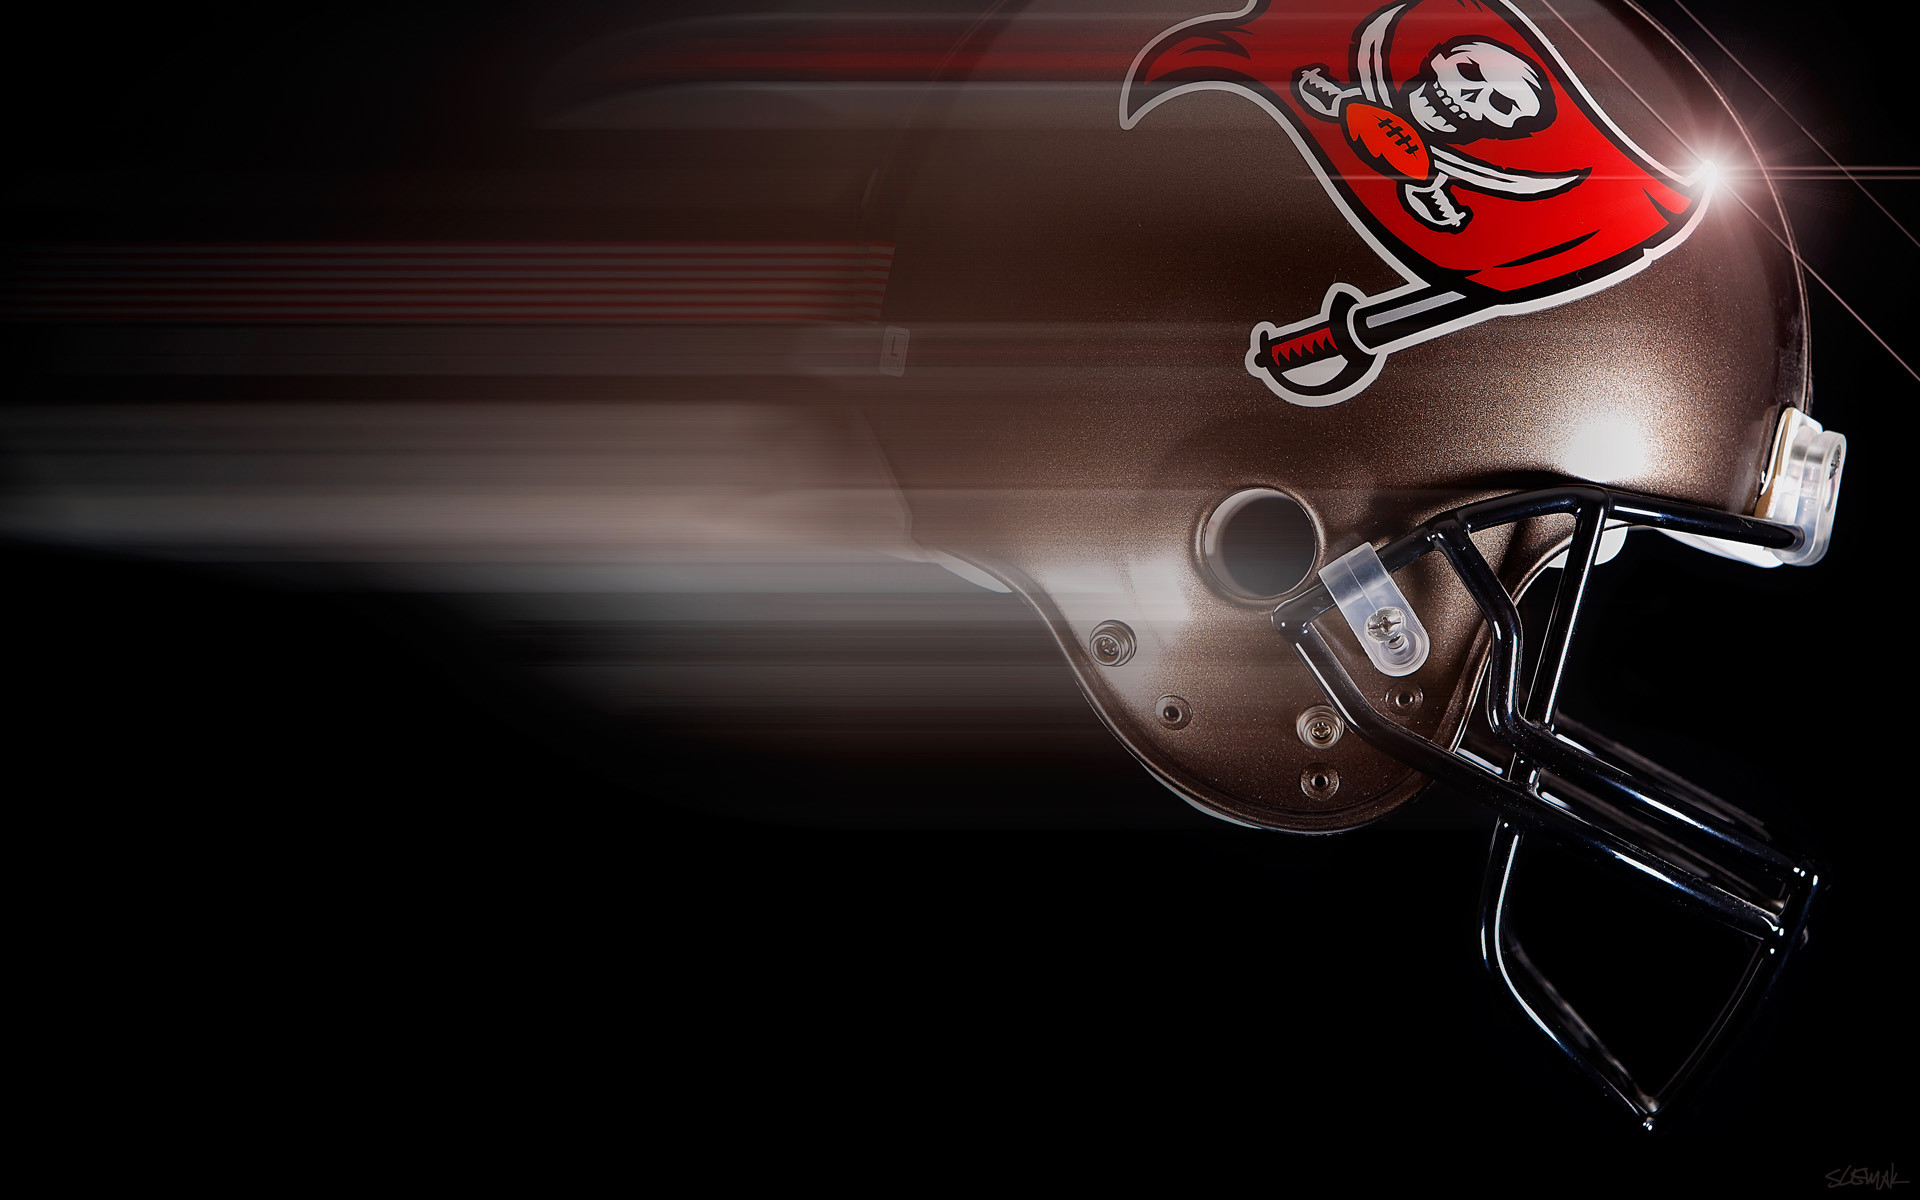 1920x1200 Download free tampa bay buccaneers wallpapers for your mobile | HD  Wallpapers | Pinterest | Tampa bay buccaneers, Hd wallpaper and Wallpaper